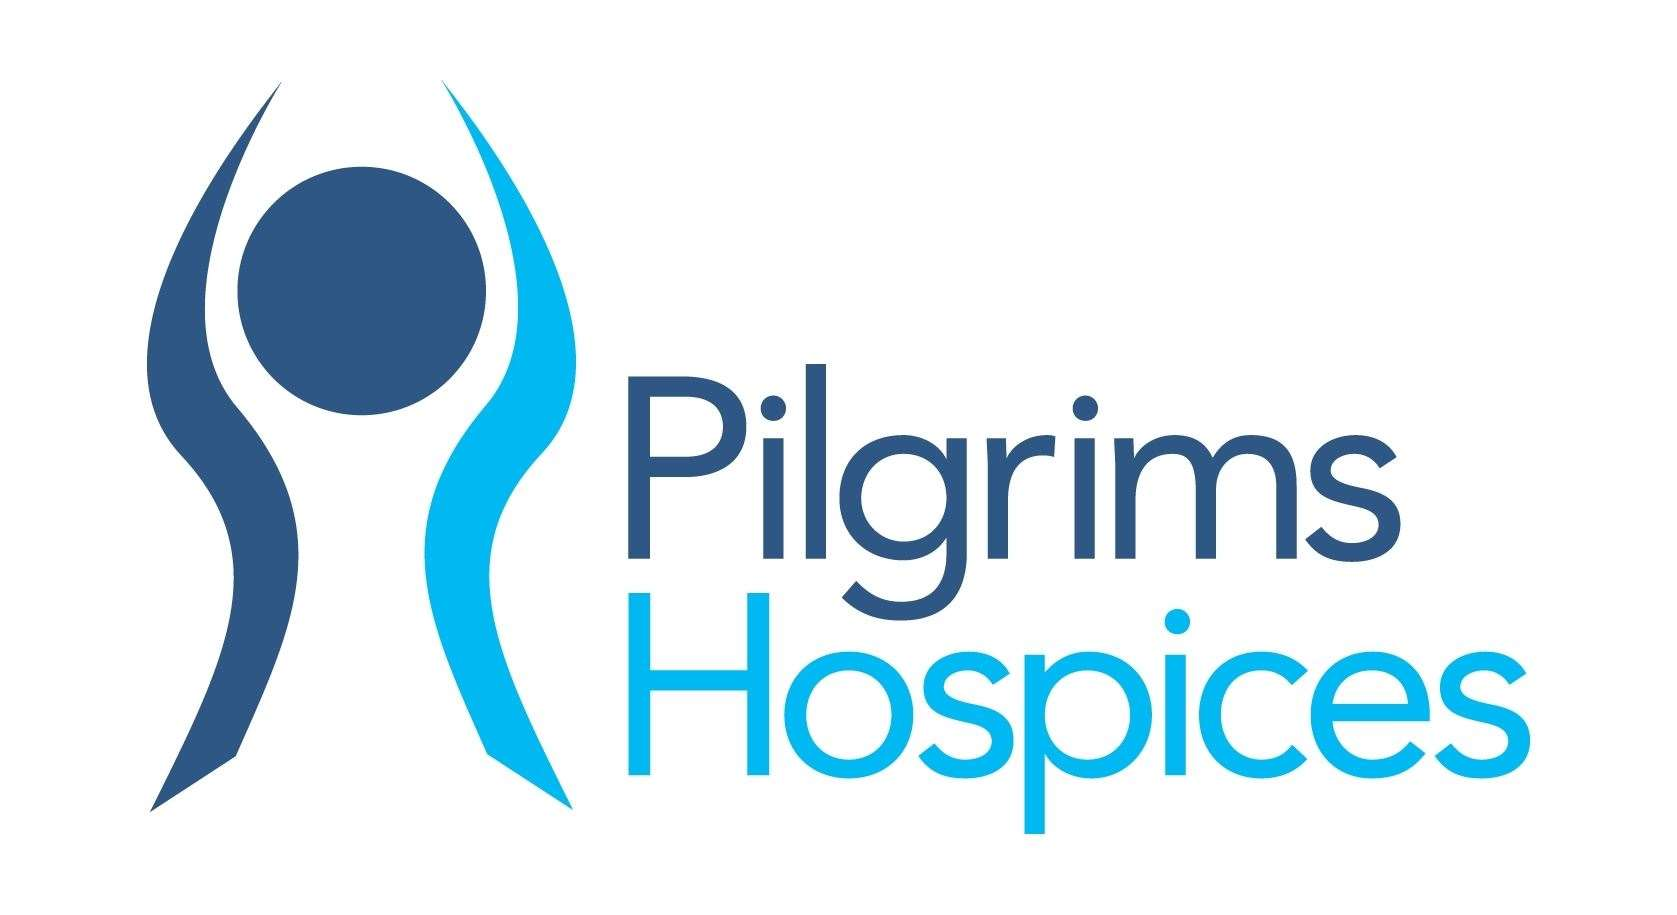 Pilgrims Hospice is one of the organisations benefitting from the emergency grants